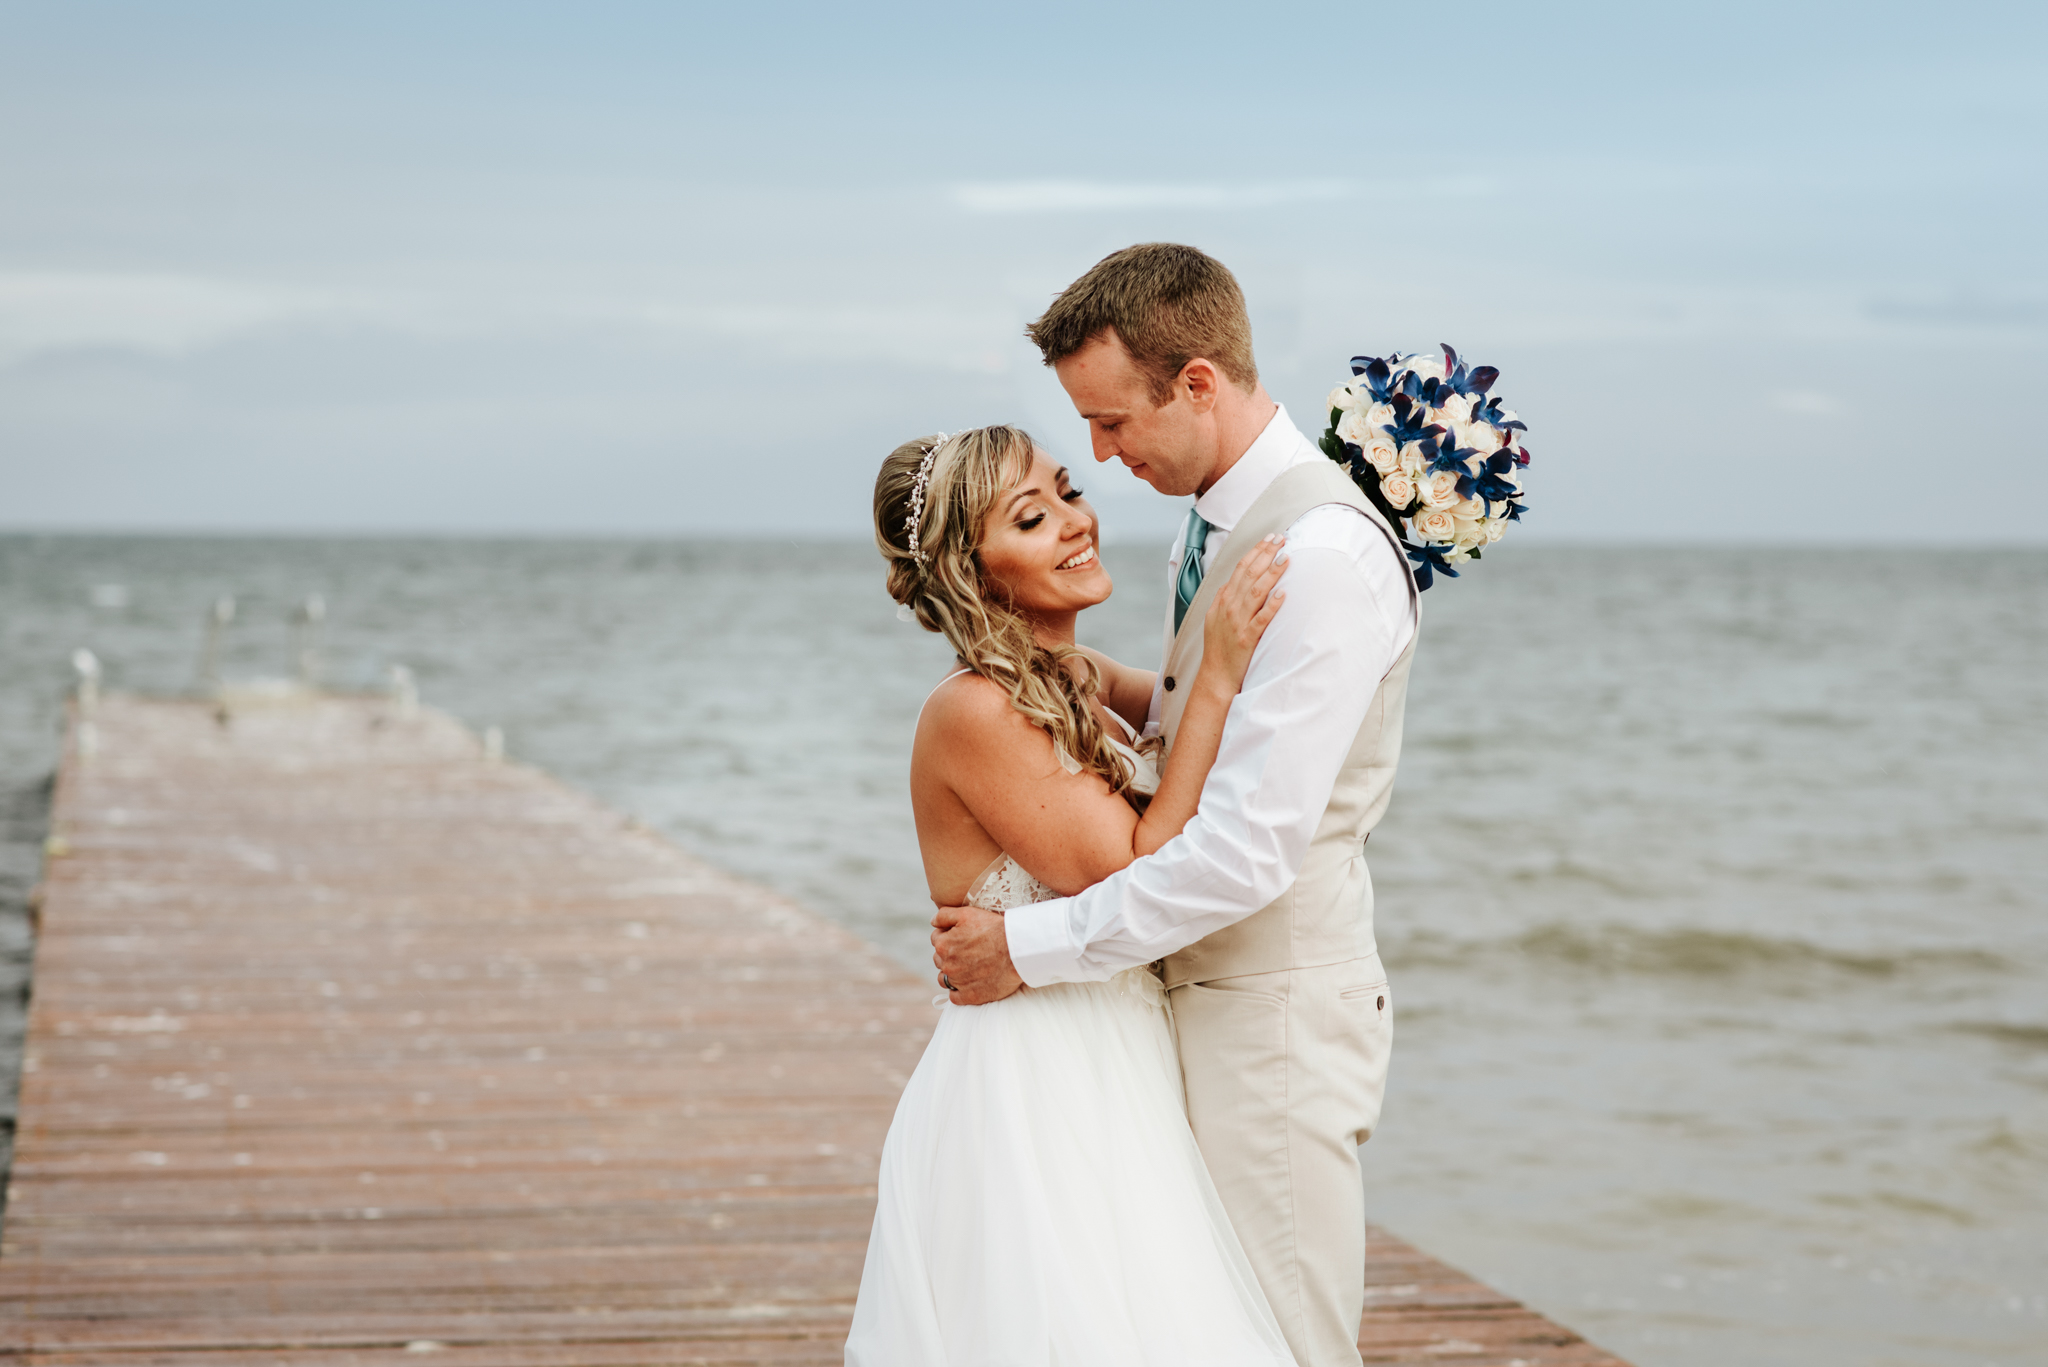 love-and-be-loved-photography-destination-wedding-photographer-cancun-mexico-jessica-jon-image-picture-photo-139.jpg